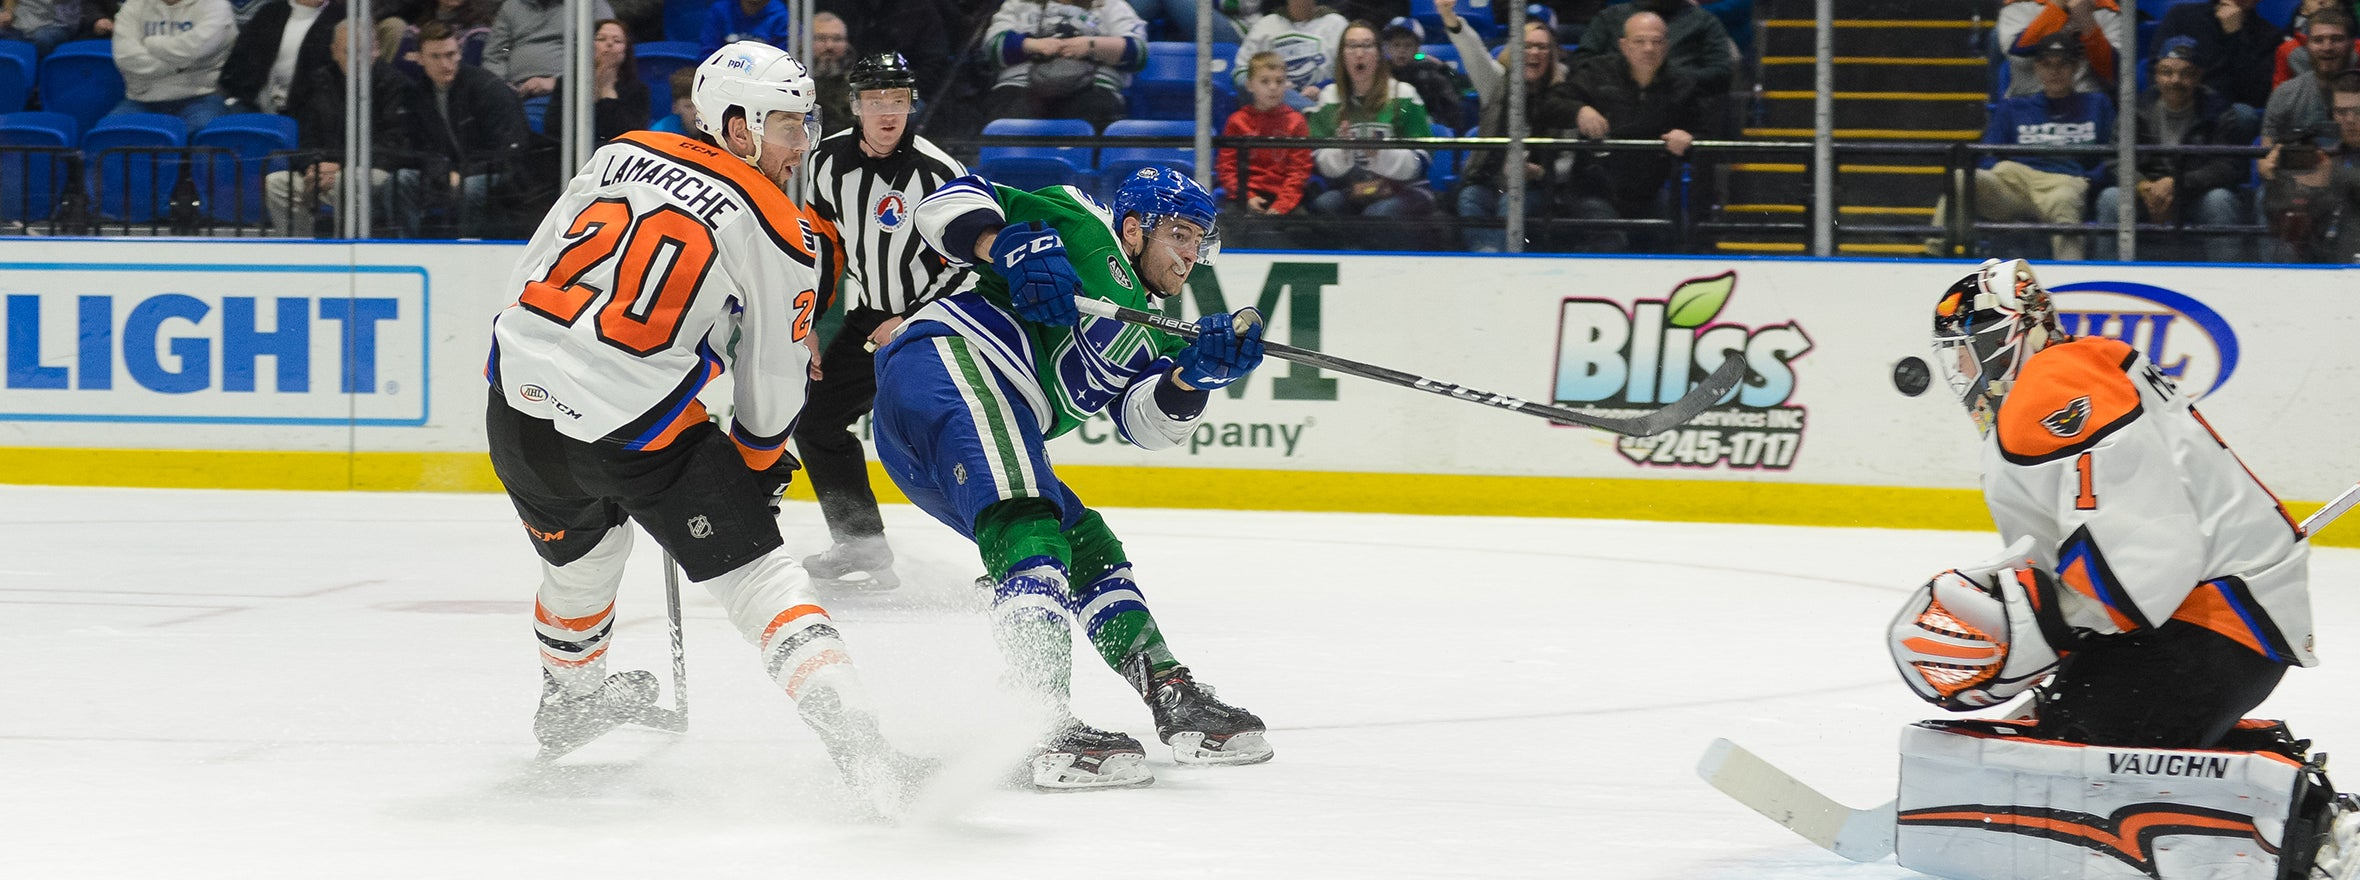 COMETS POINT STREAK SNAPPED BY PHANTOMS